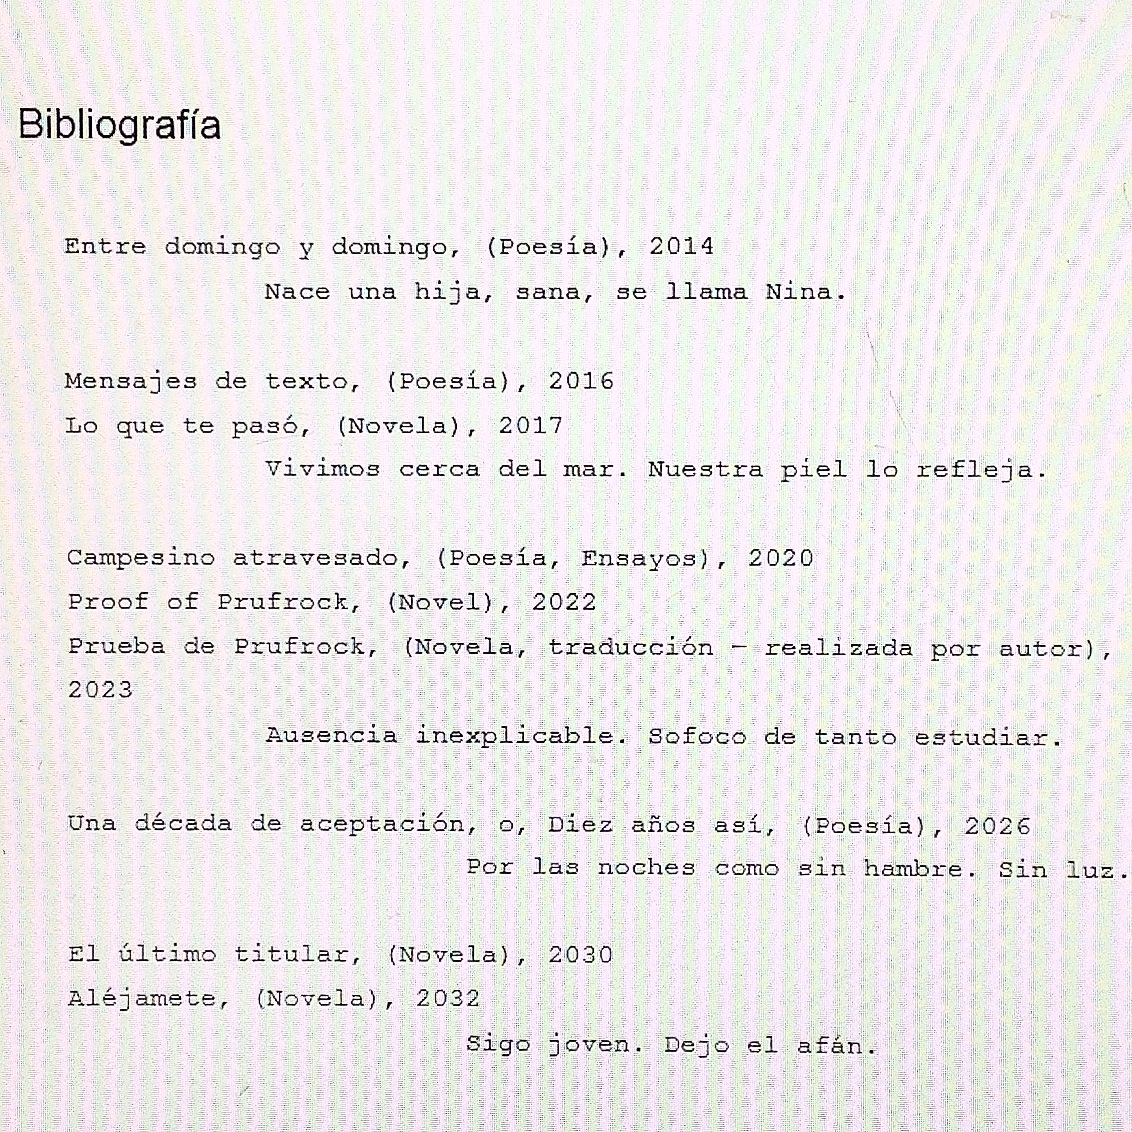 how to say bibliography in spanish